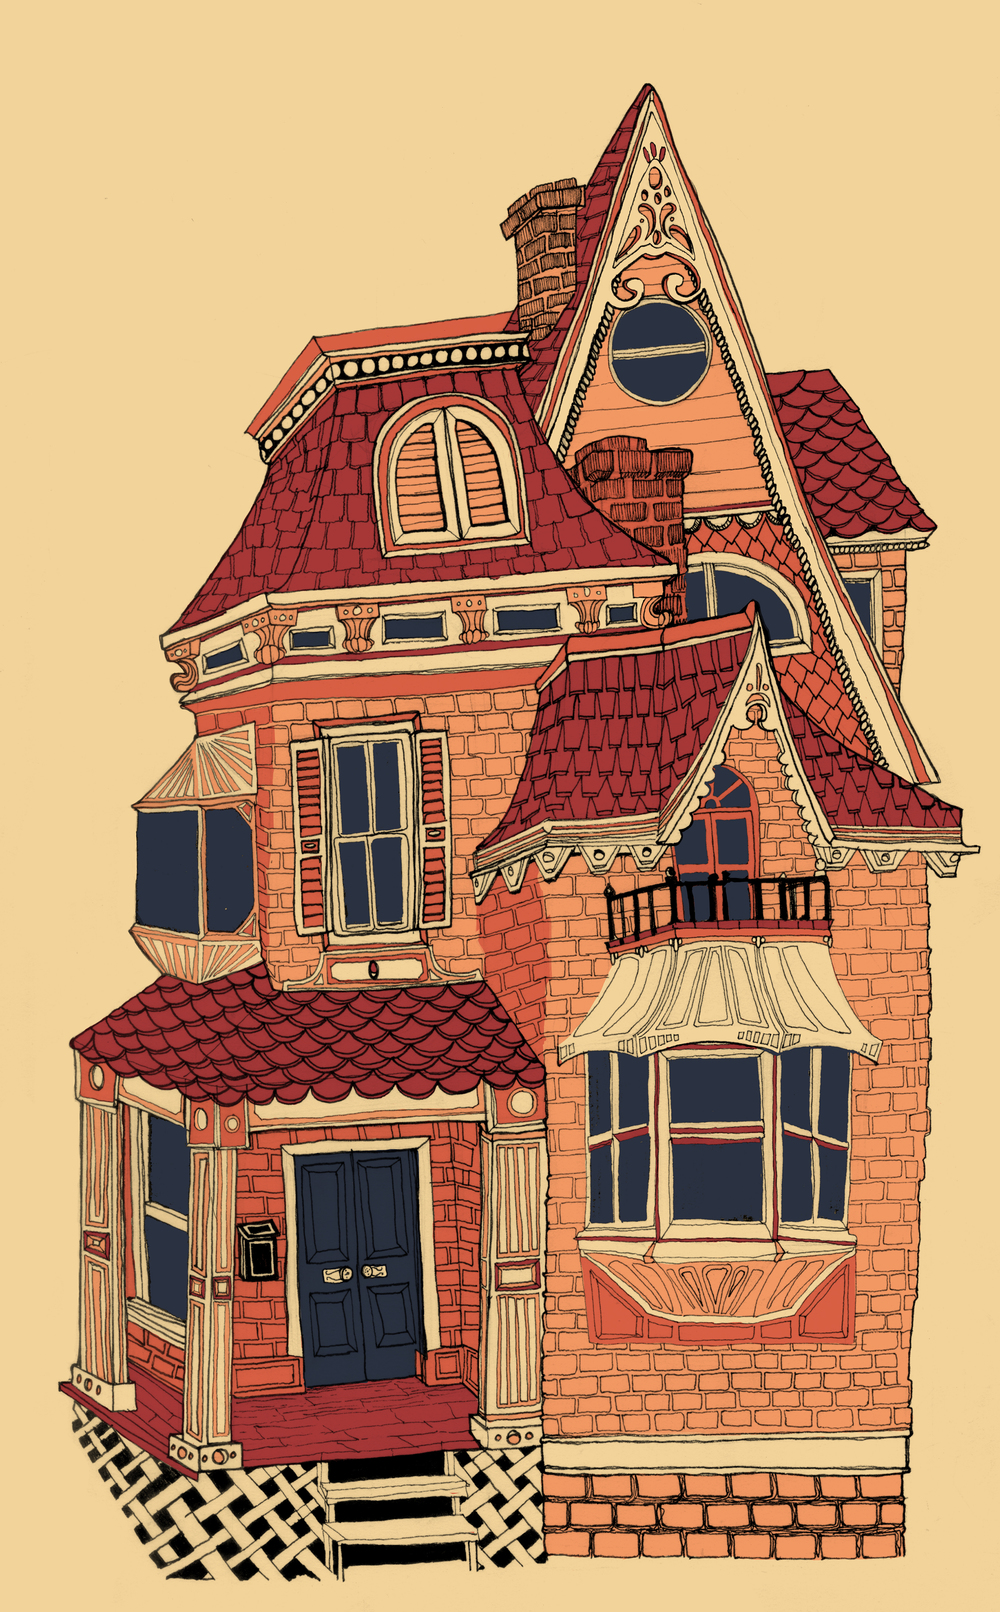 house color copy.jpg